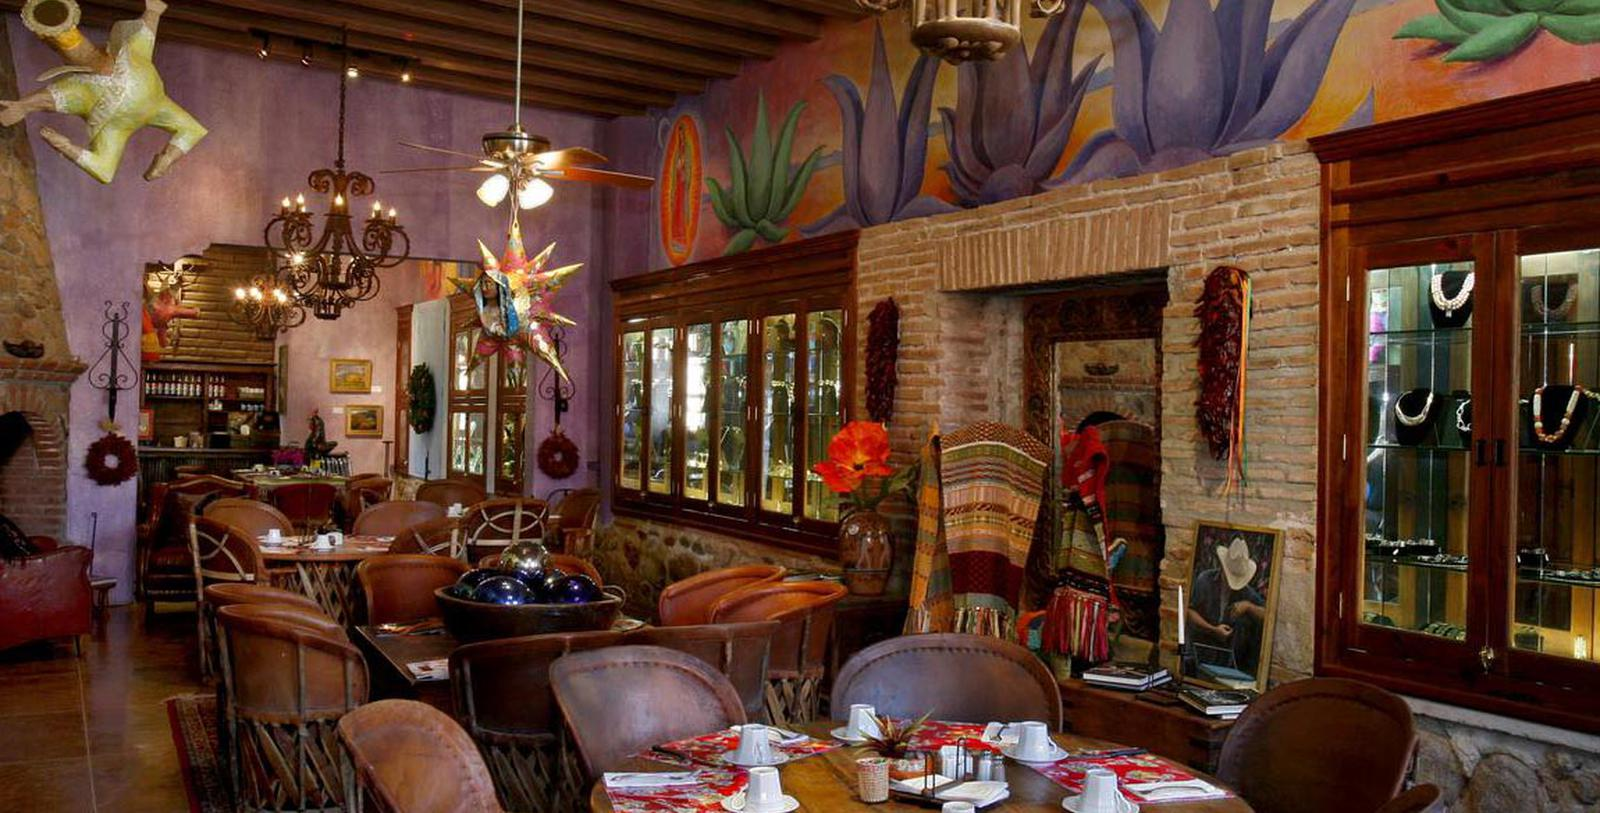 Image of Treetop Grill, Hacienda de los Santos, Alamos, Mexico, 1600s, Member of Historic Hotels Worldwide, Taste